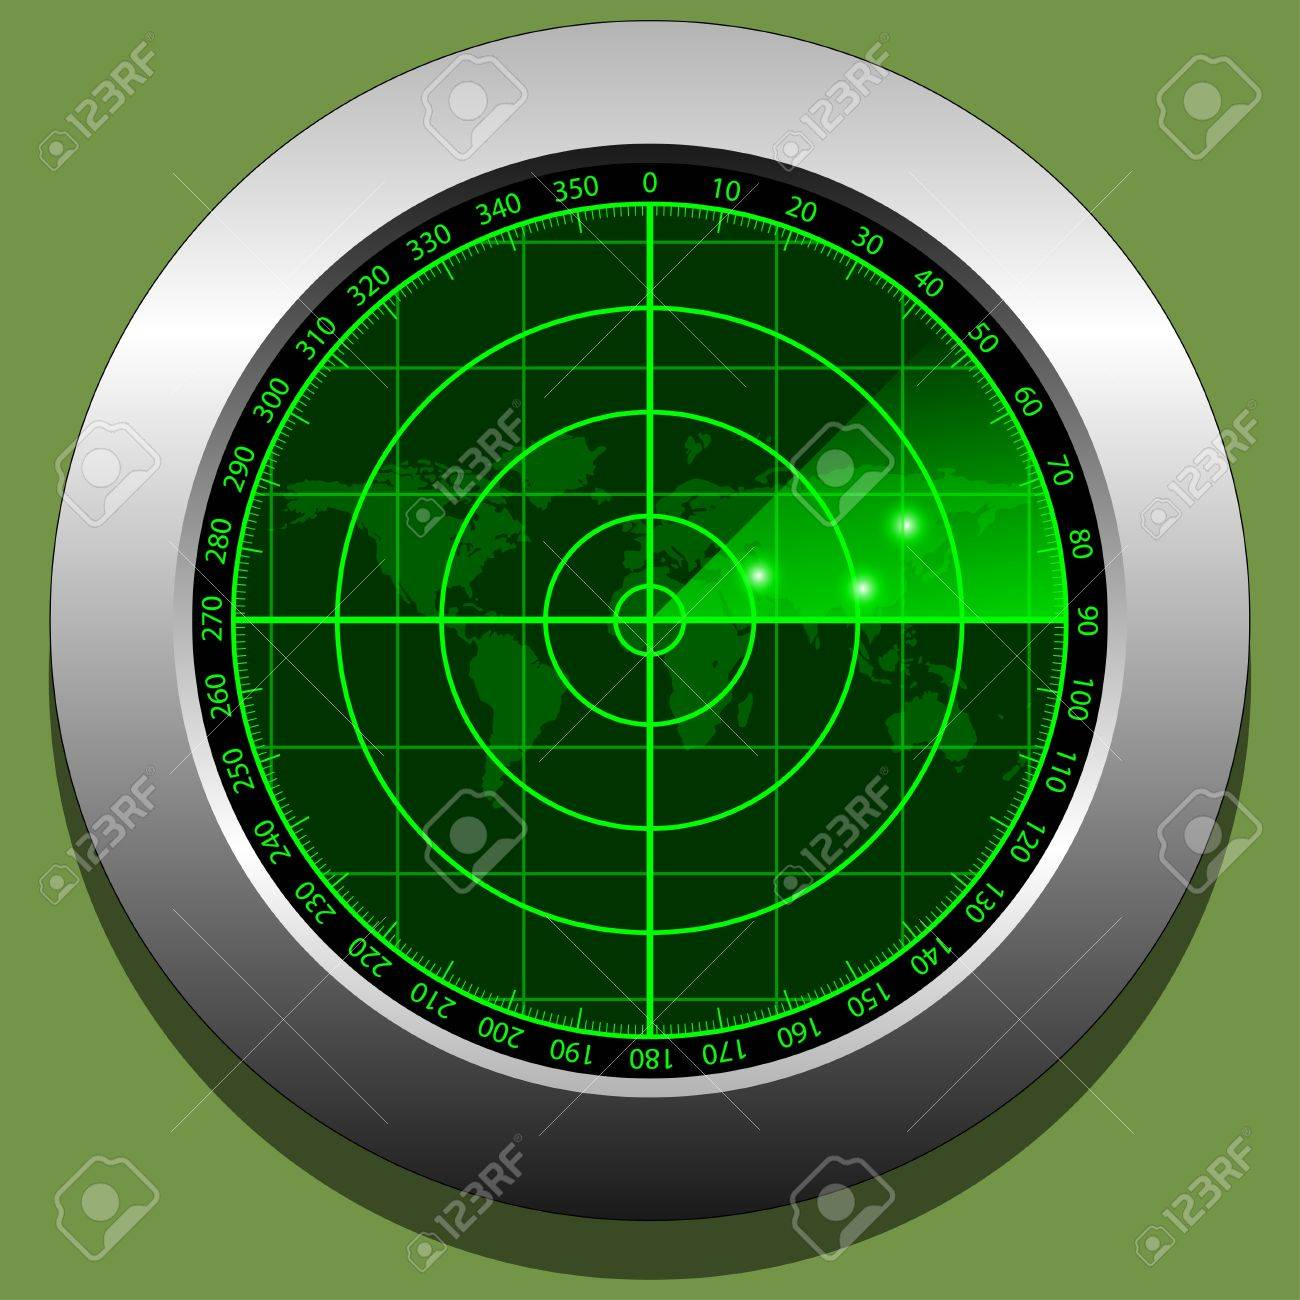 Radar screen Stock Vector - 16567748